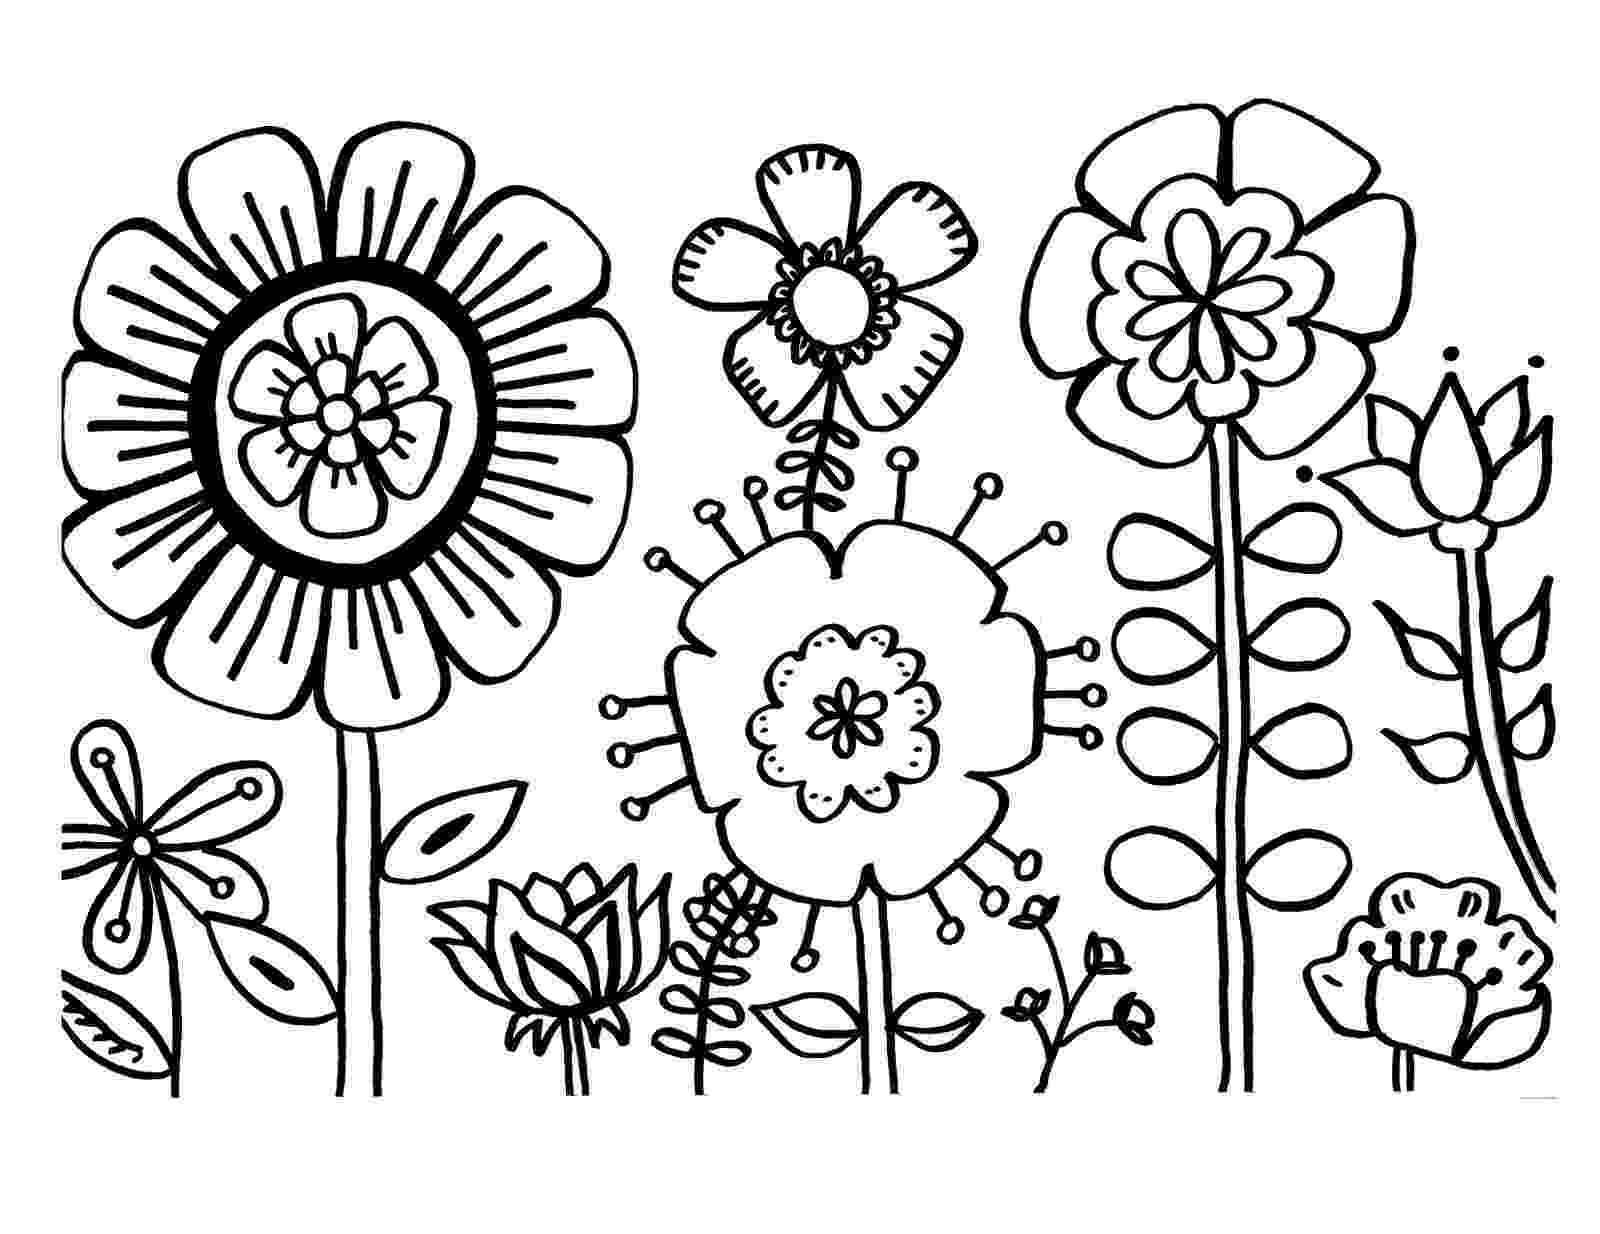 pictures of flowers to color free printables printable flowers to color of to printables flowers free color pictures